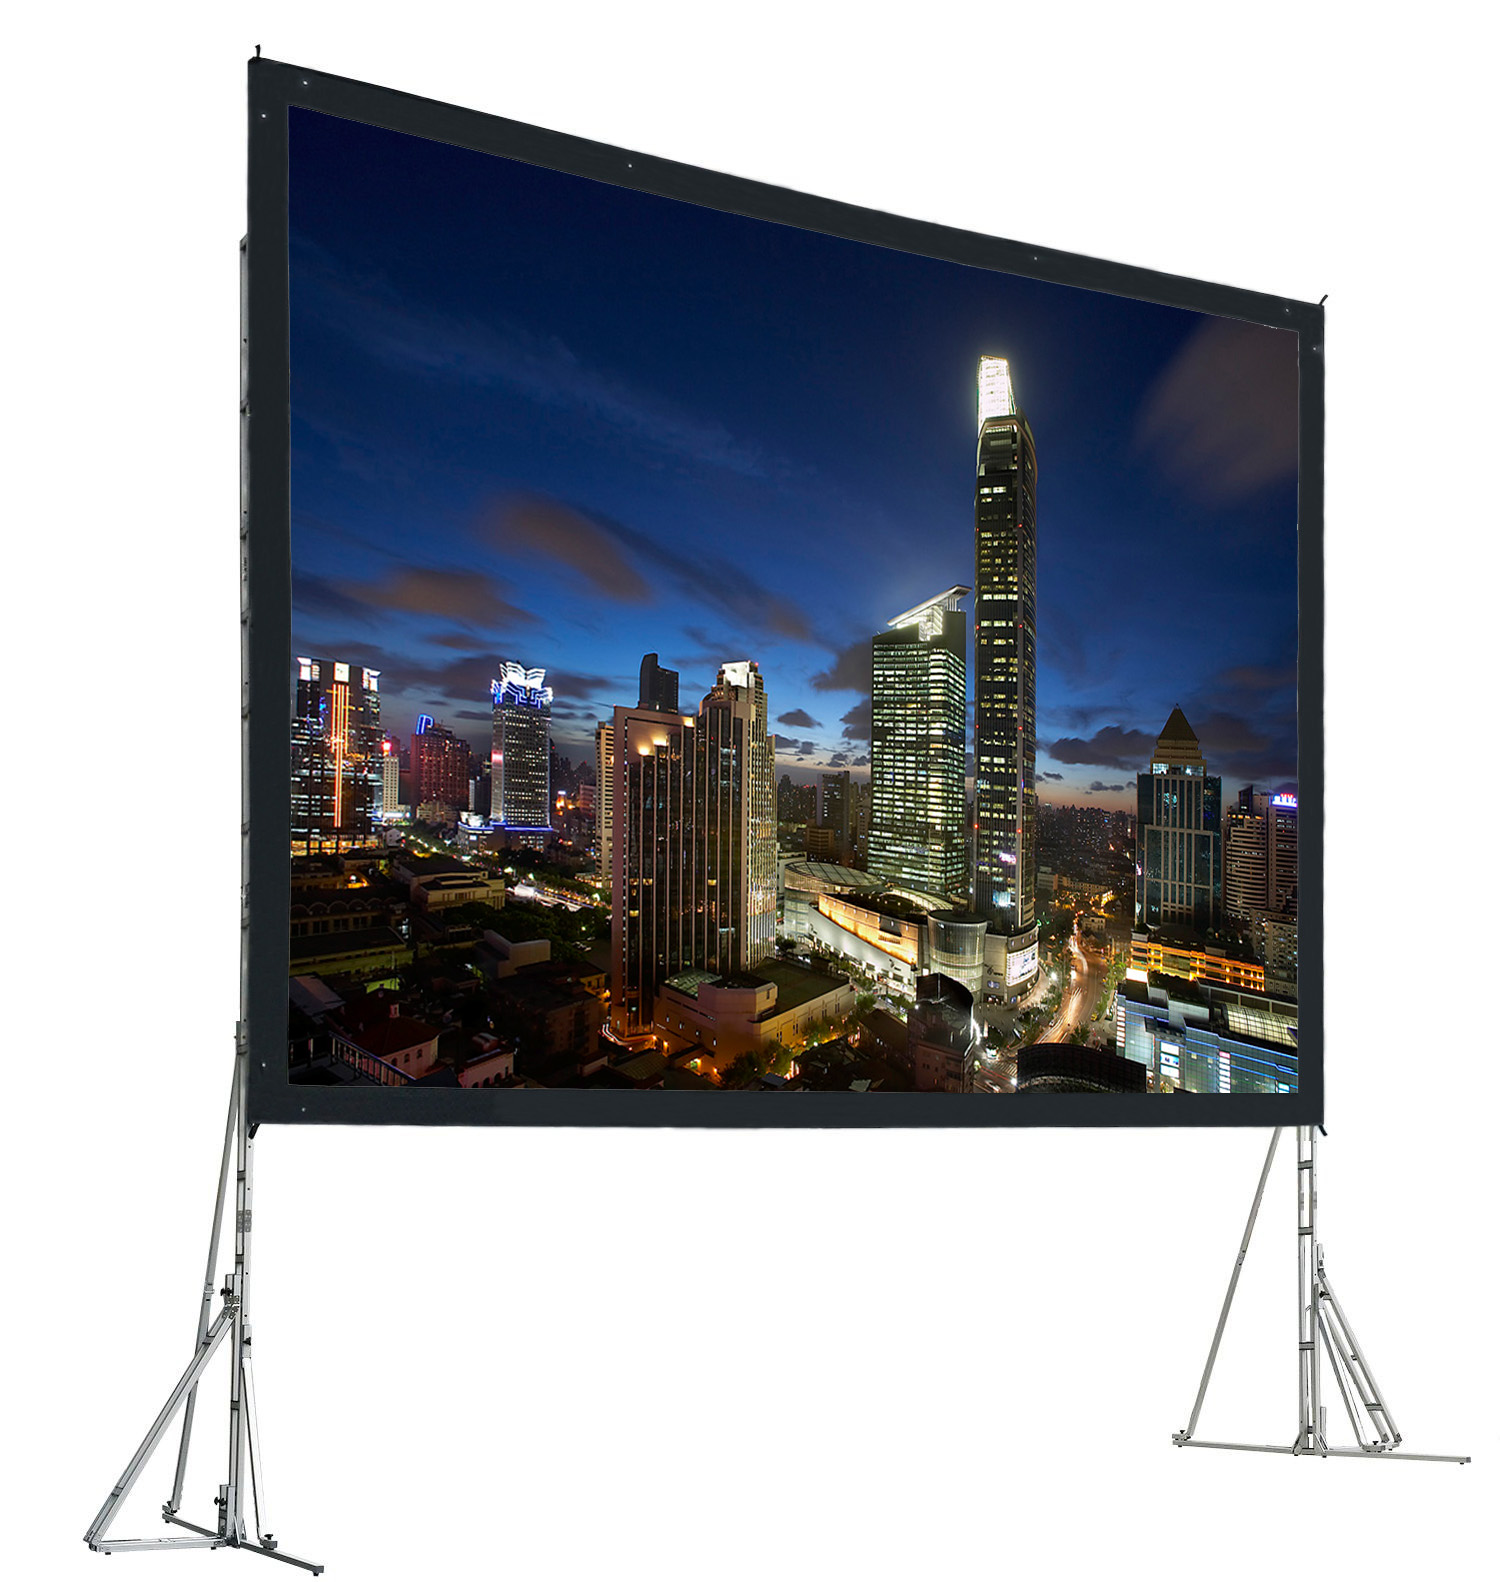 120 inch 4:3 Portable adjustable fast folding projector screen